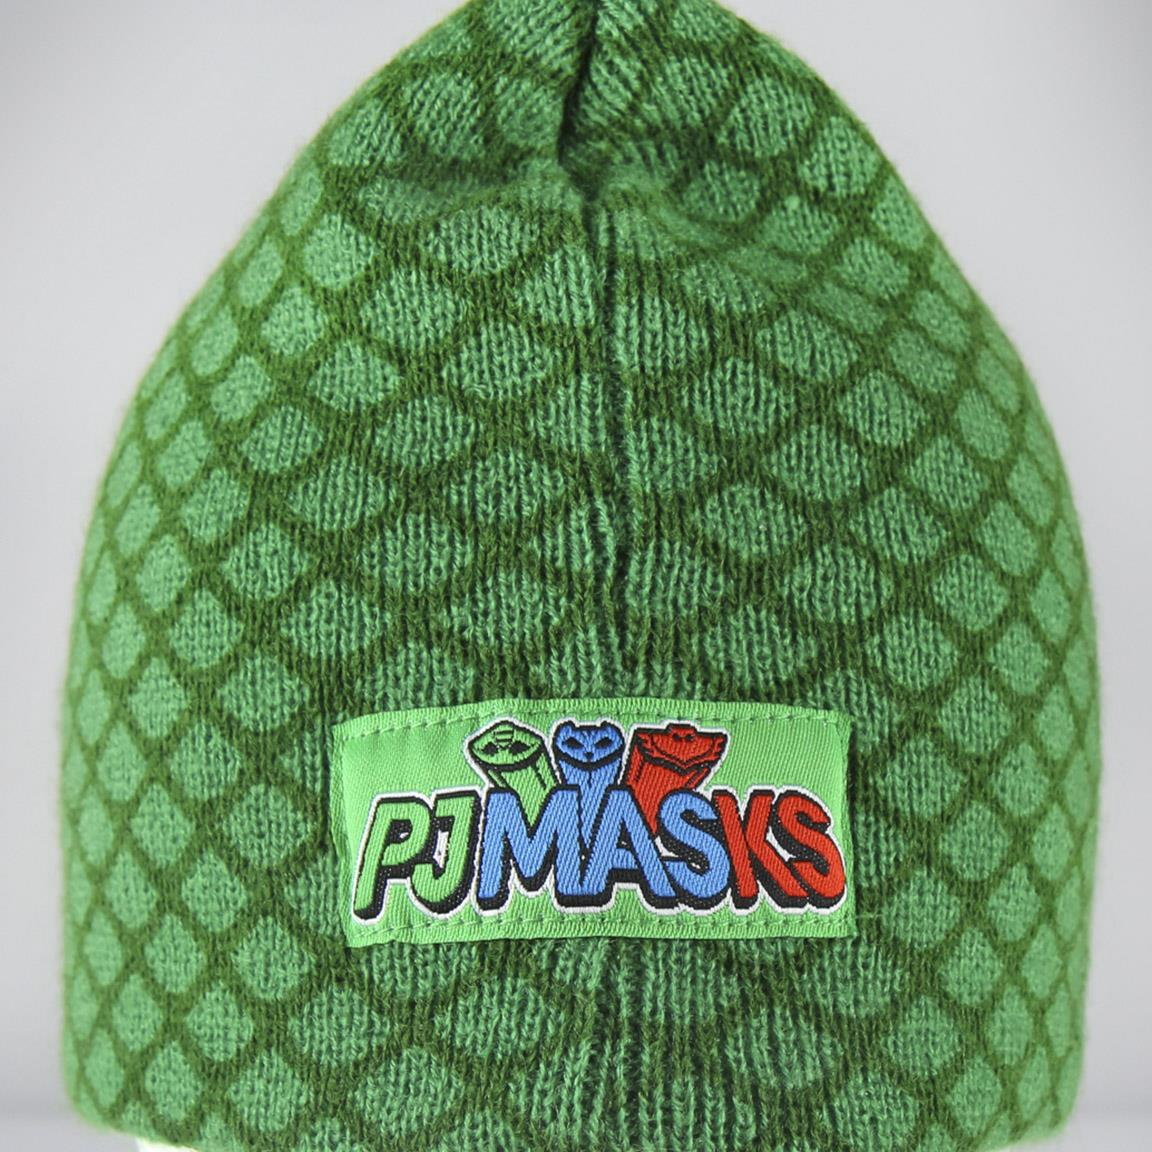 Manufacturer and wholesaler of HAT MASK PJ MASKS GEKKO - CERDÁ 8b5d602e97b